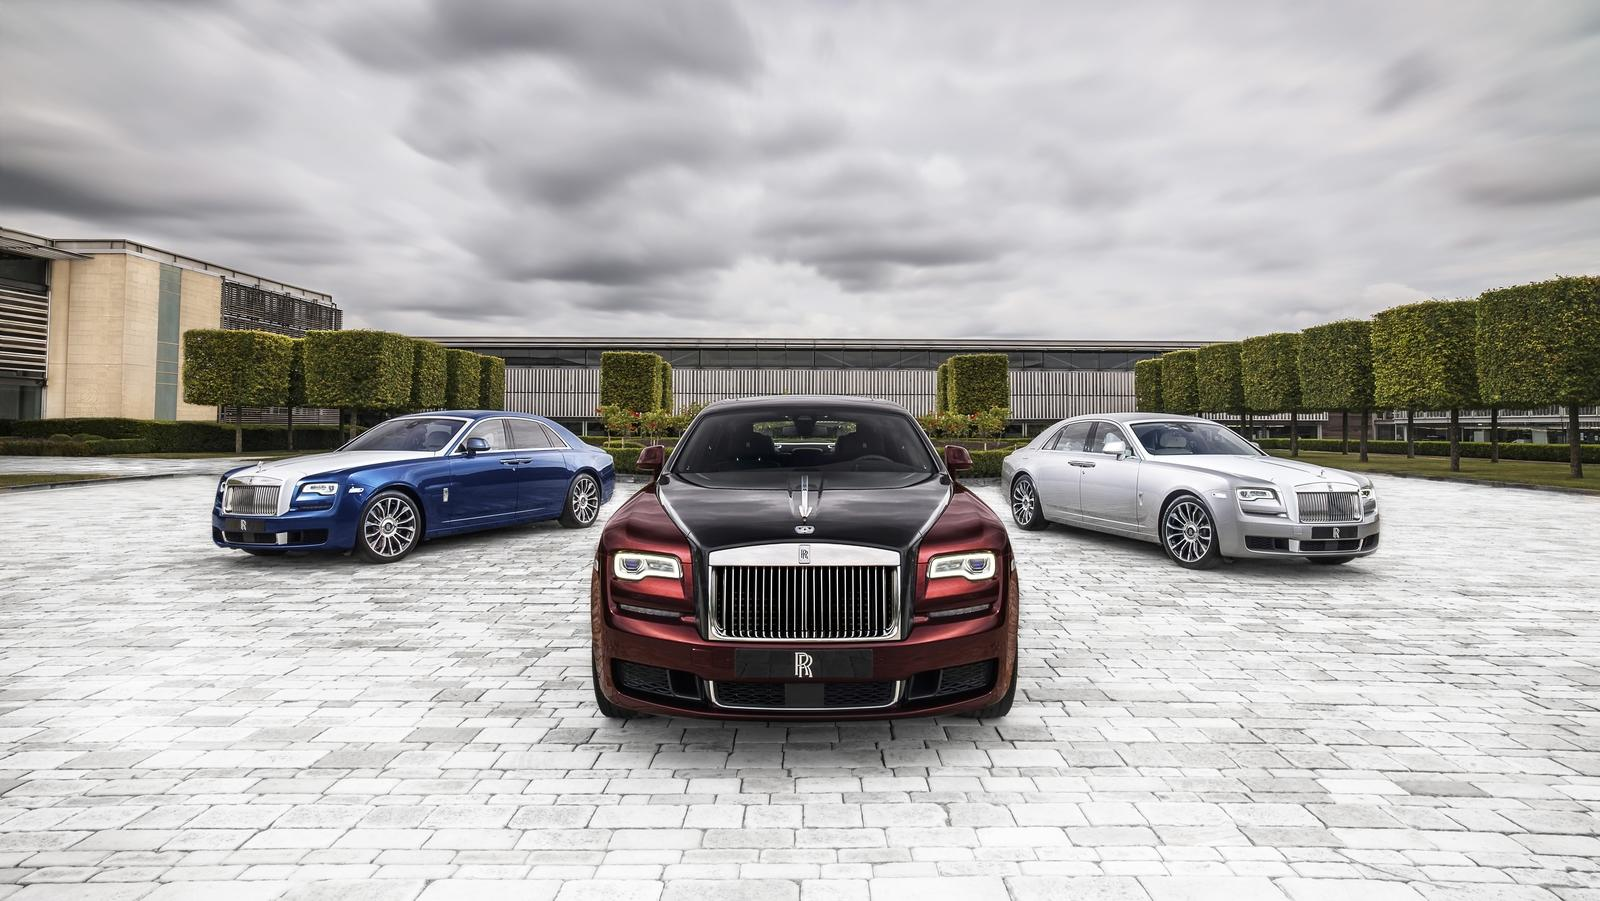 2019 Rolls Royce Ghost Zenith Collection Pictures Photos